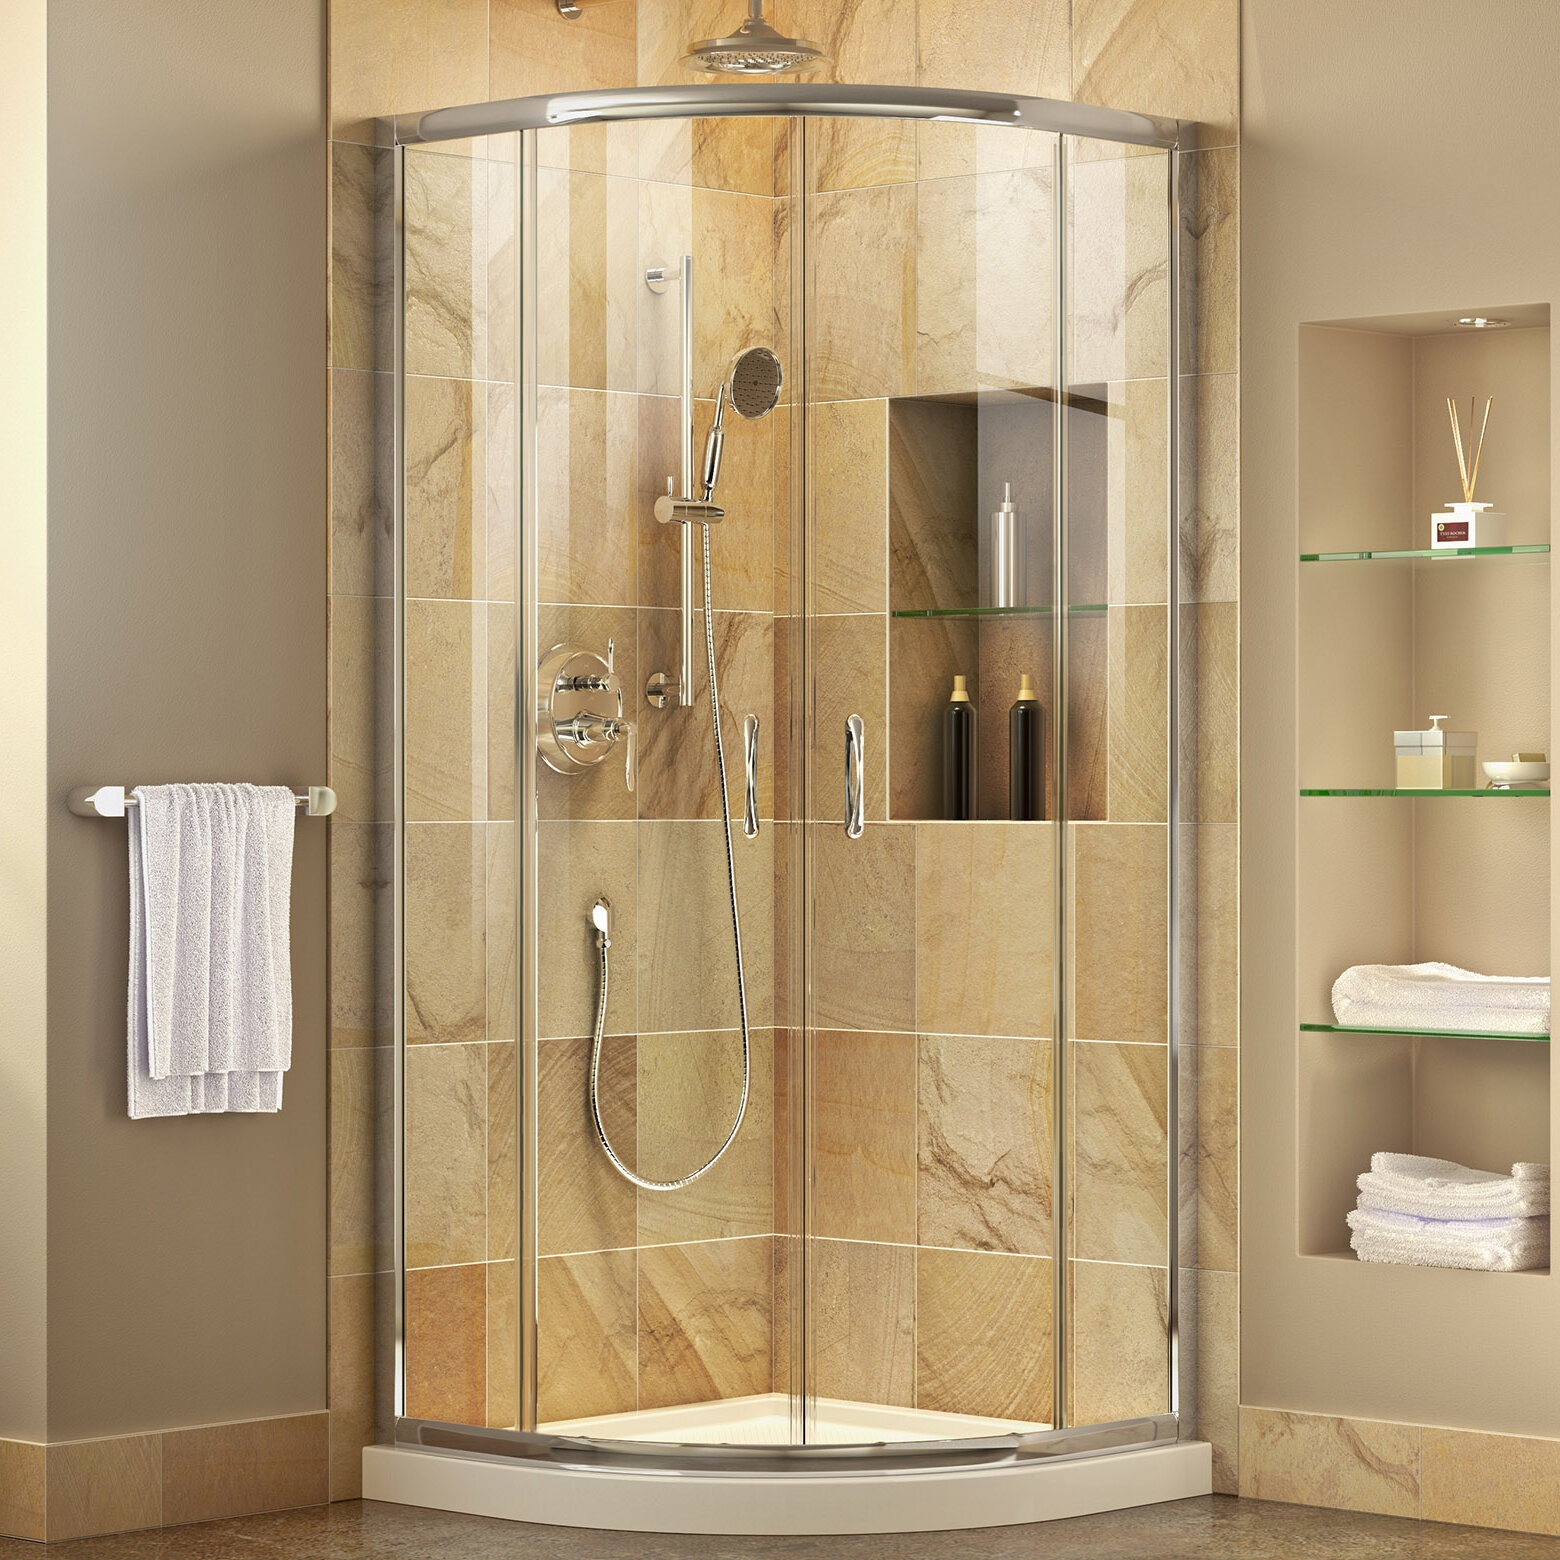 Dreamline Prime 38 X 7475 Round Sliding Shower Enclosure With